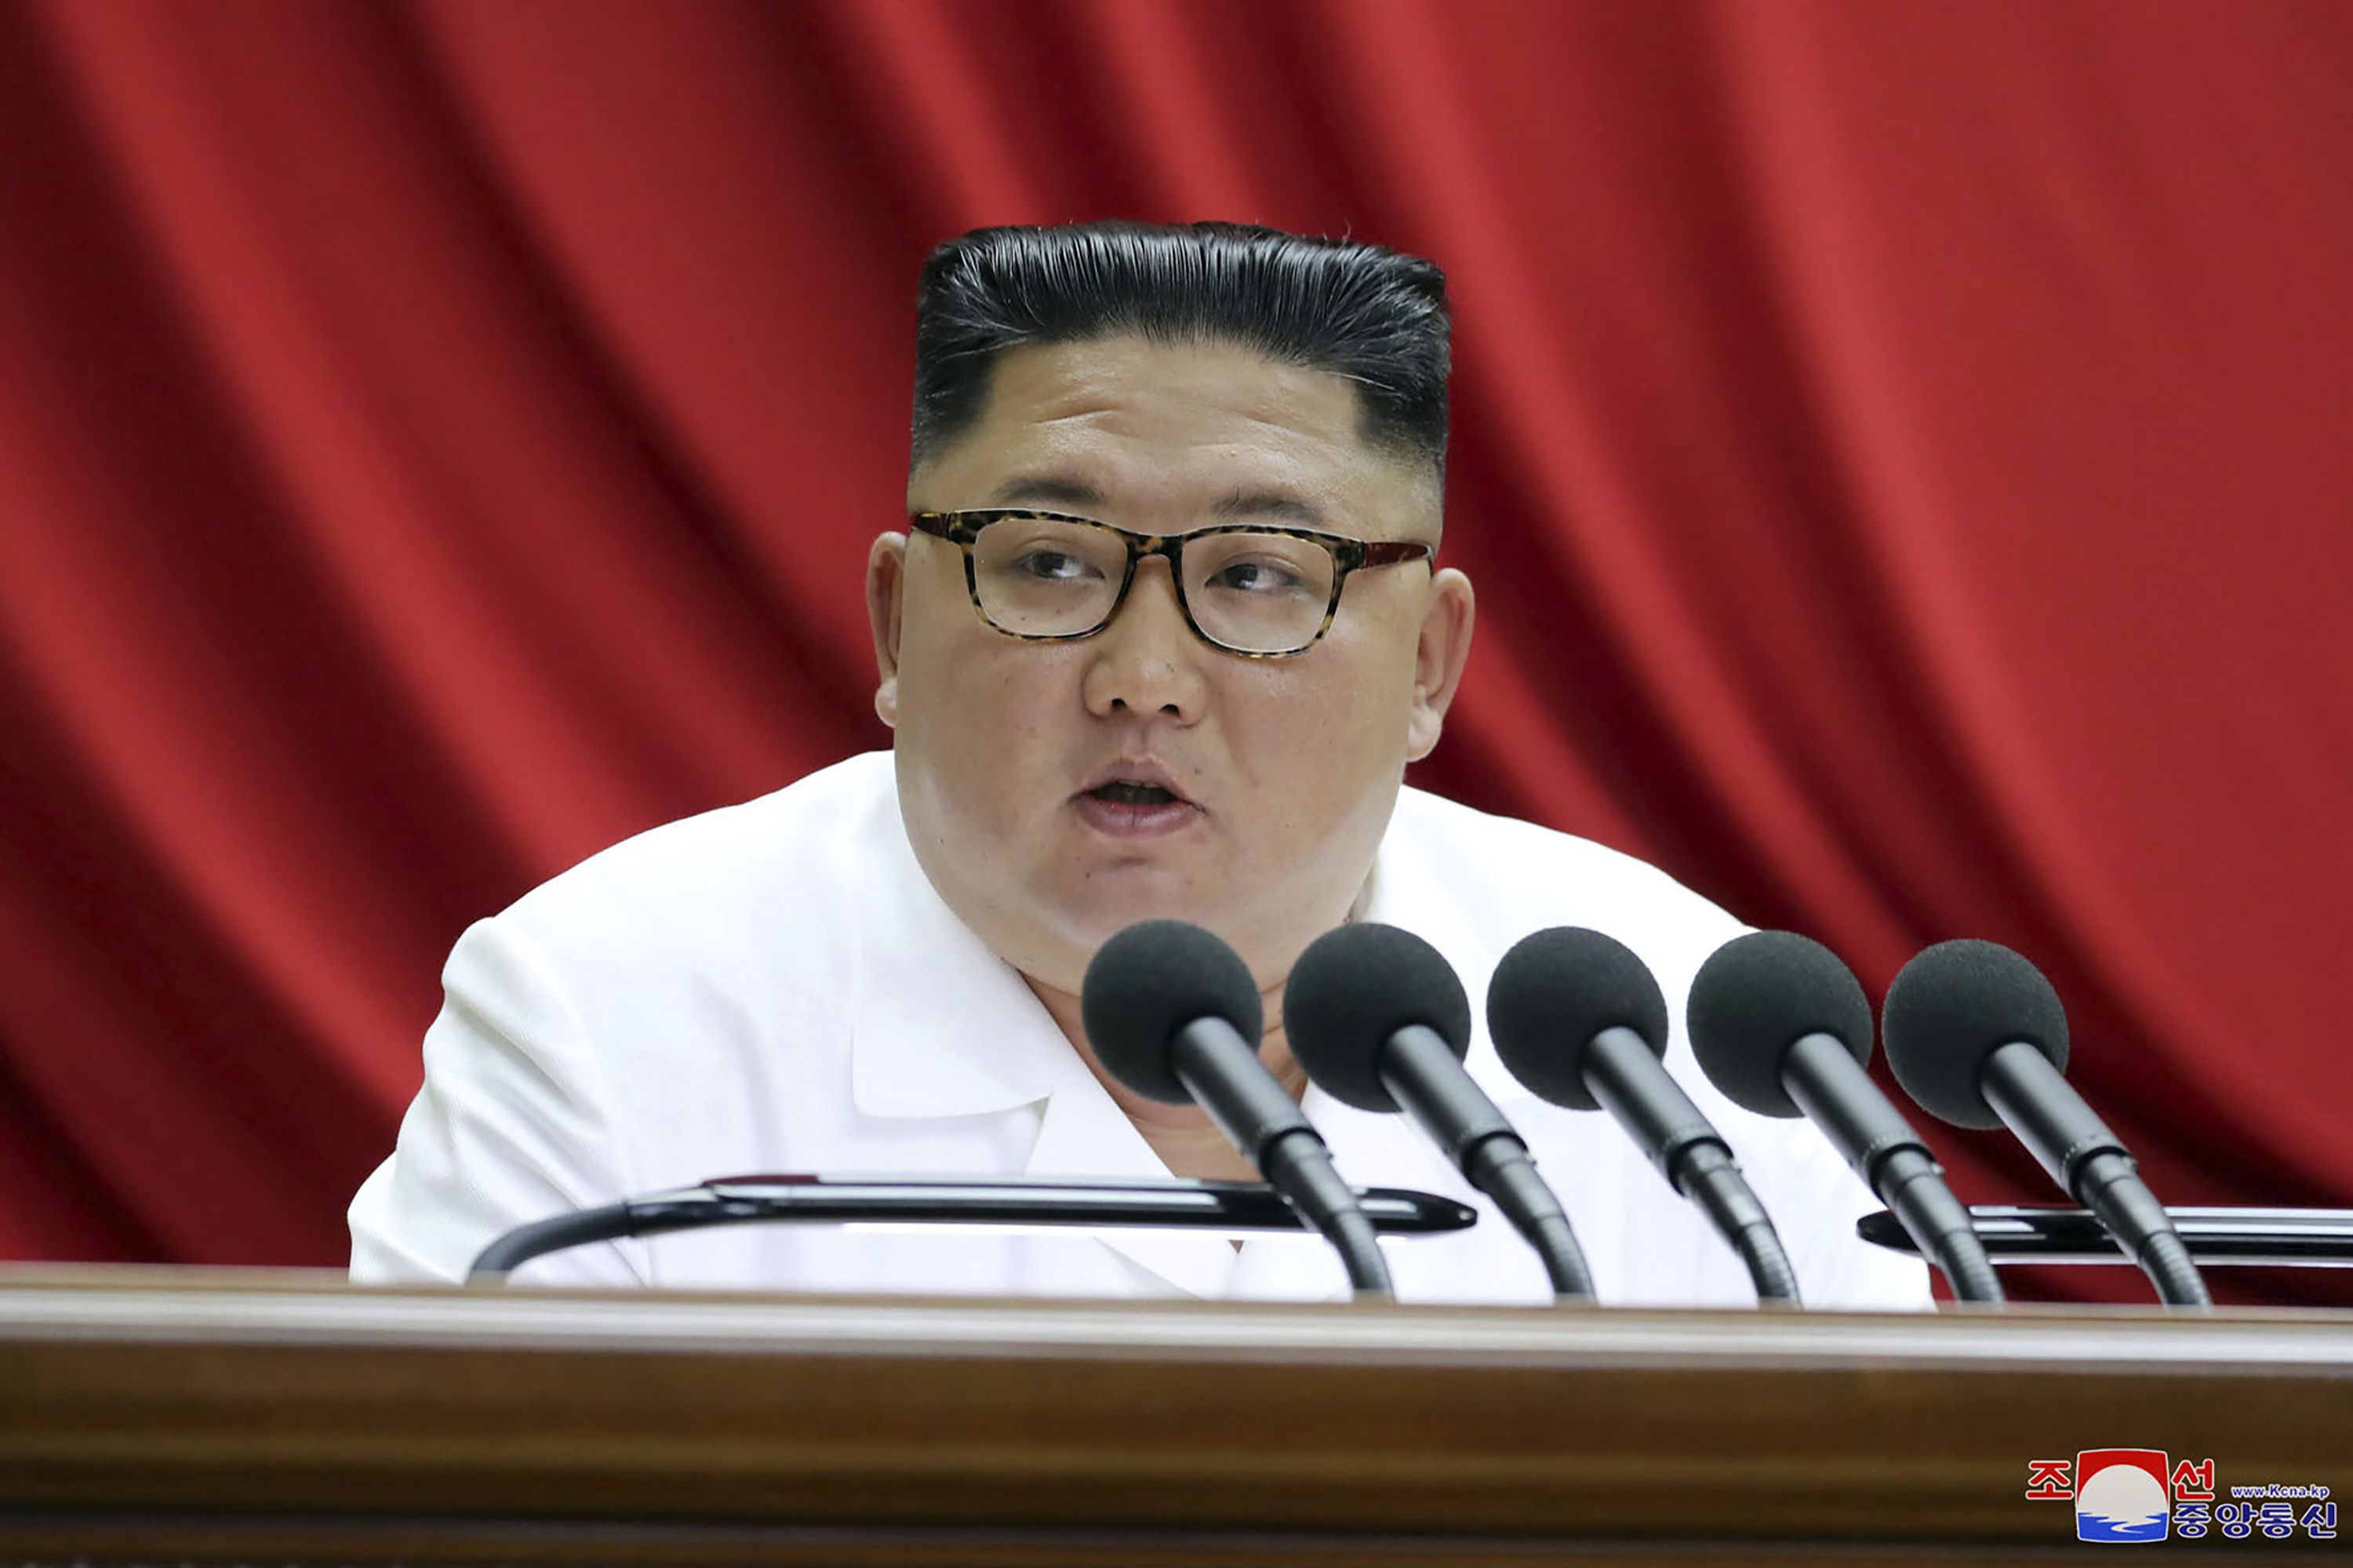 In this Monday, Dec. 30, 2019, photo provided by the North Korean government, North Korean leader Kim Jong Un speaks during a Workers' Party meeting in Pyongyang, North Korea.